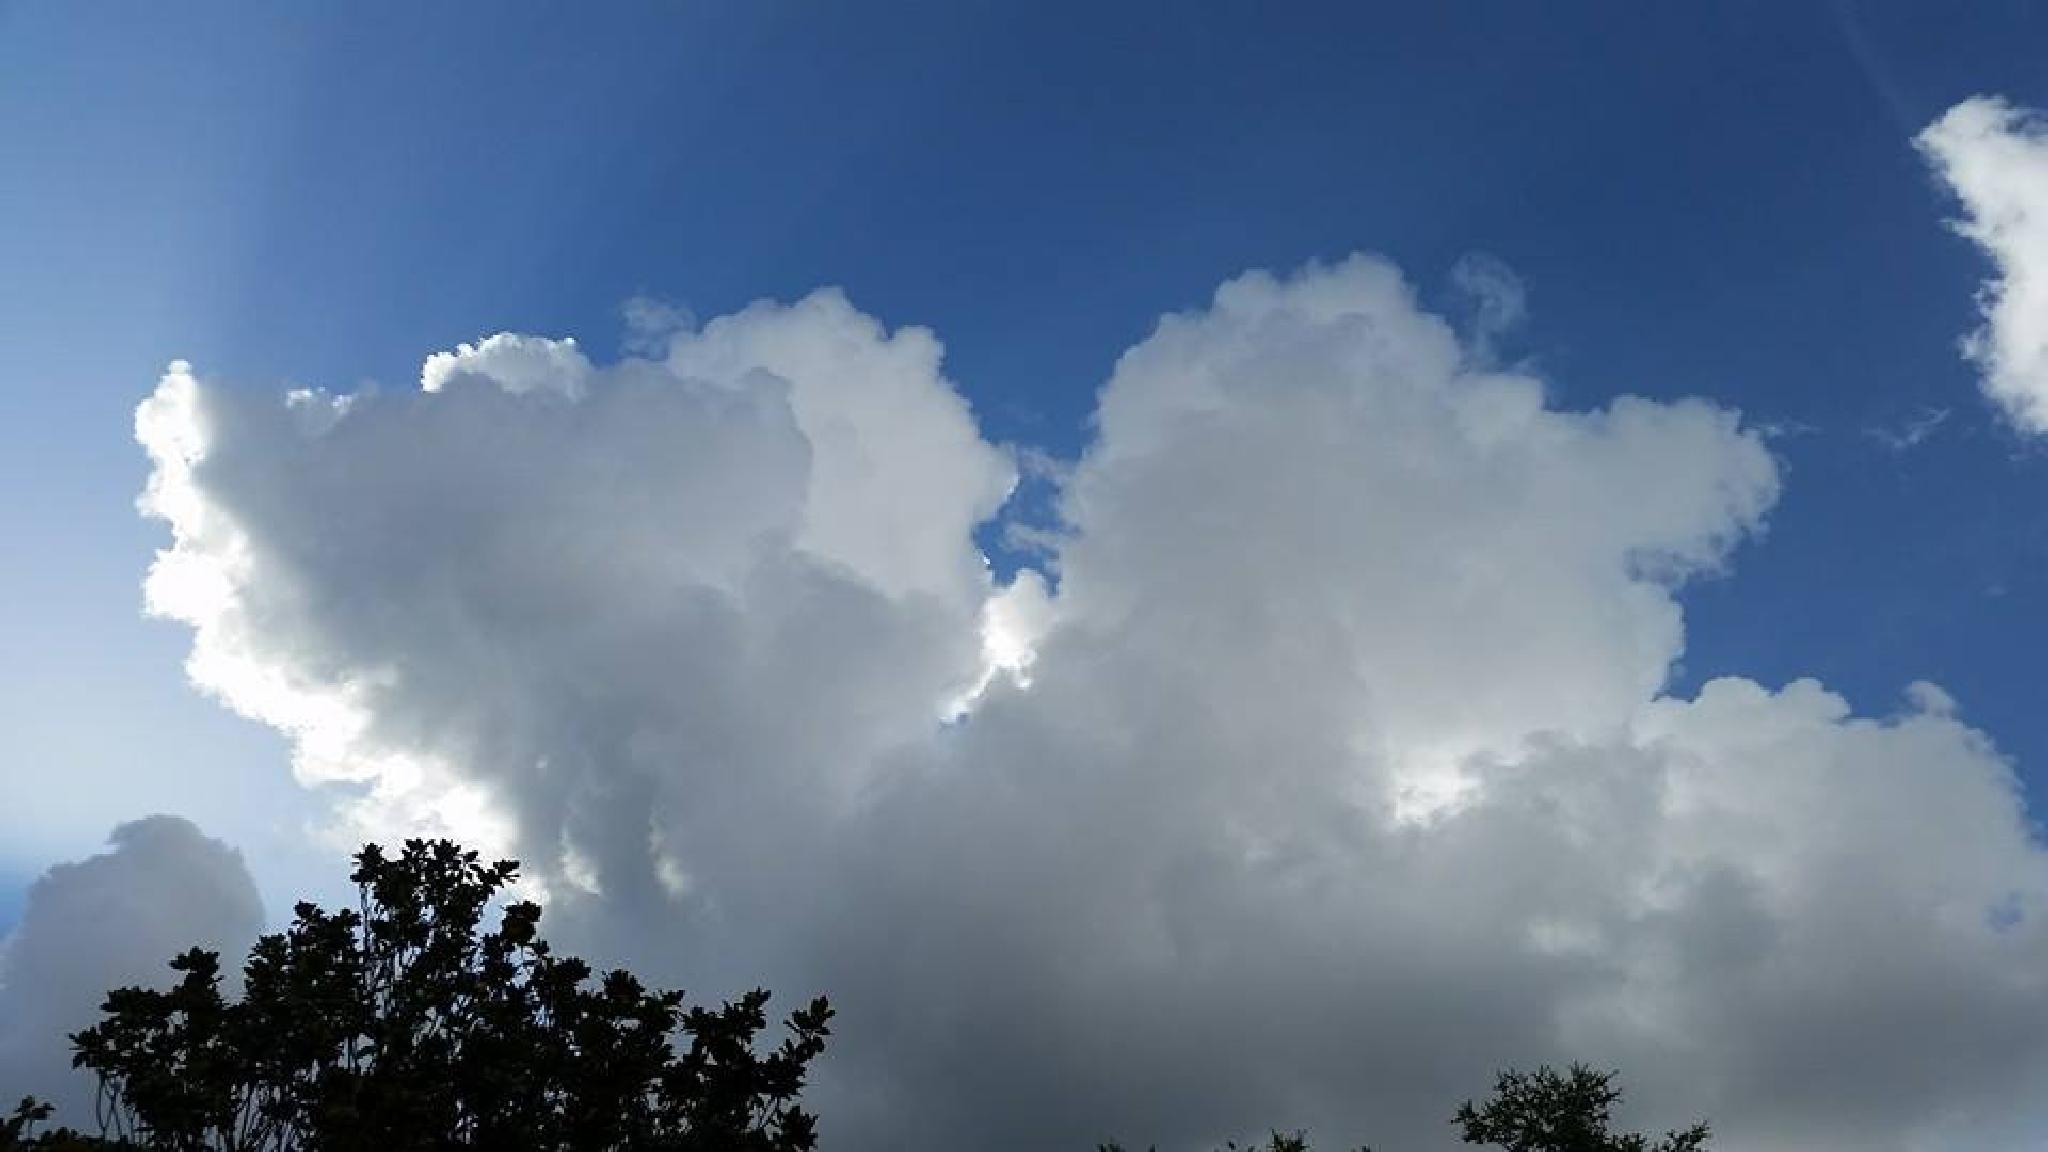 Angelic Cloud by mariealmaw